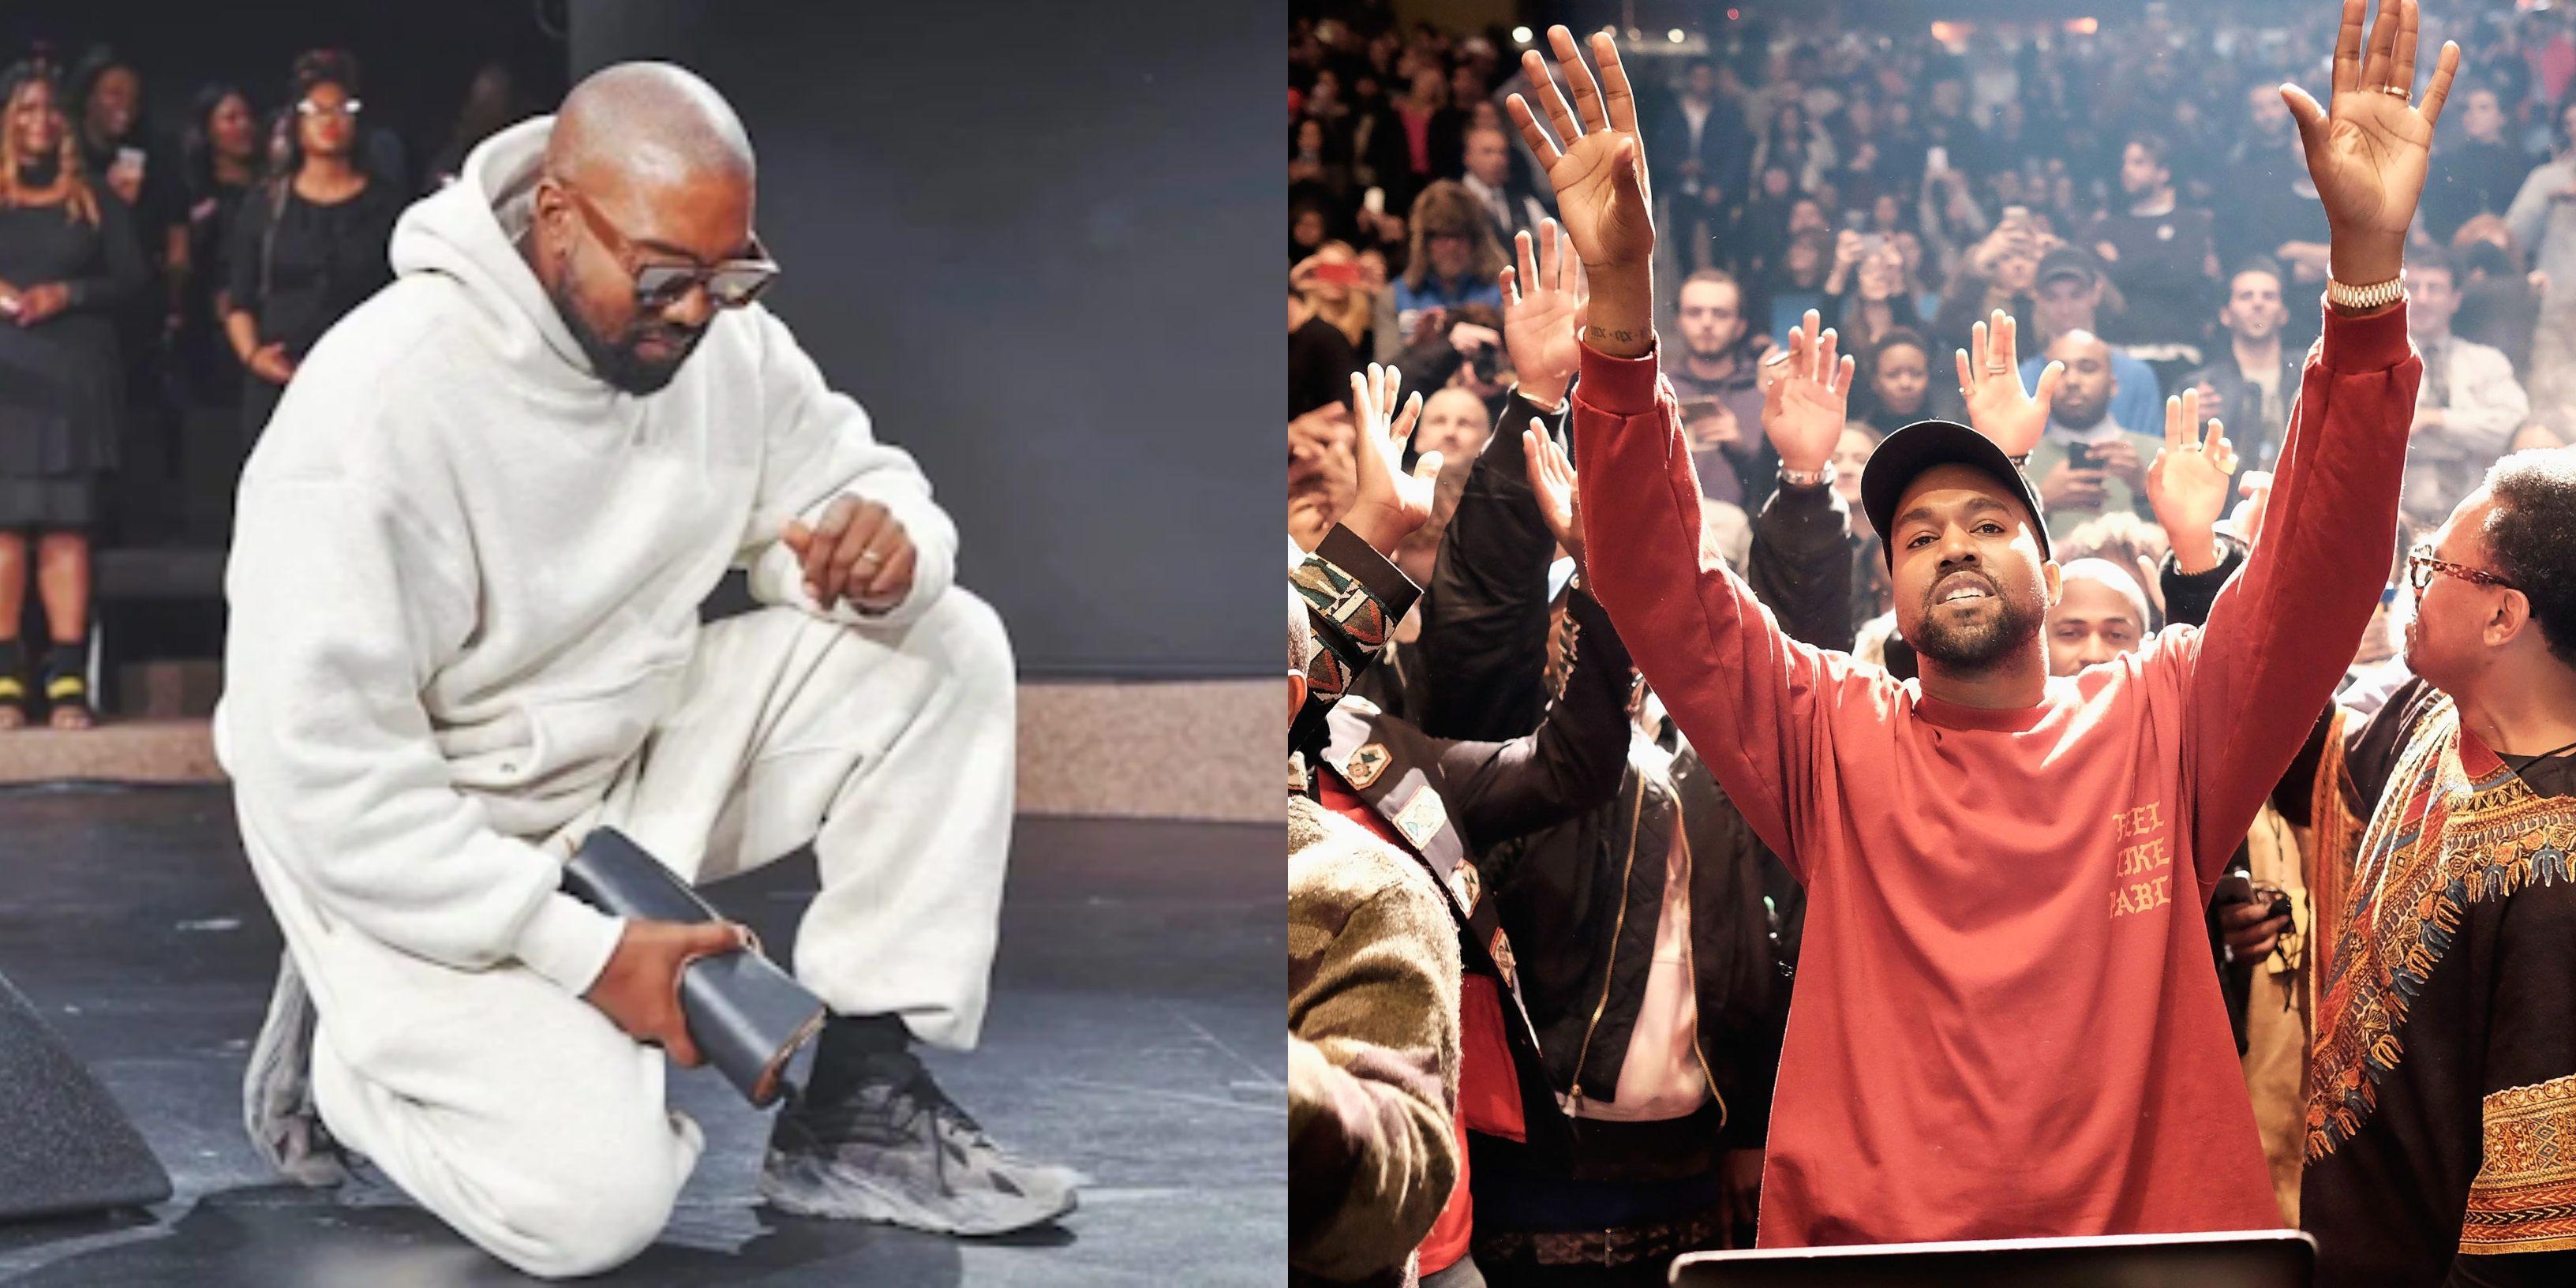 'I have seen every riches that the devil can give but Jesus is King' – Kanye West testifies